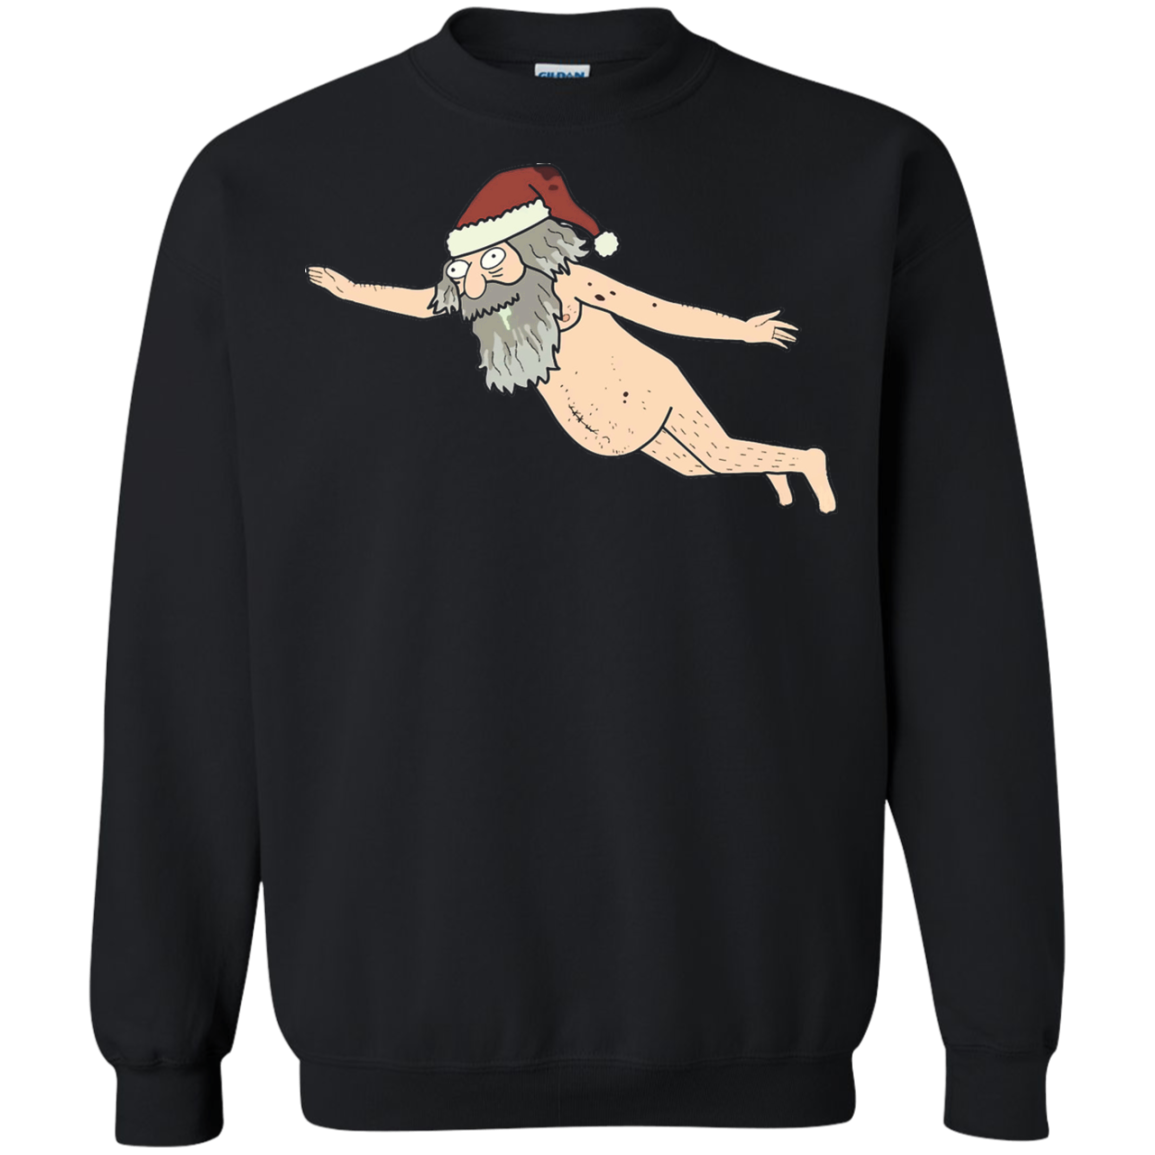 Rick and Morty Anatomy Park Santa Christmas Sweater, Hoodie, Long ...